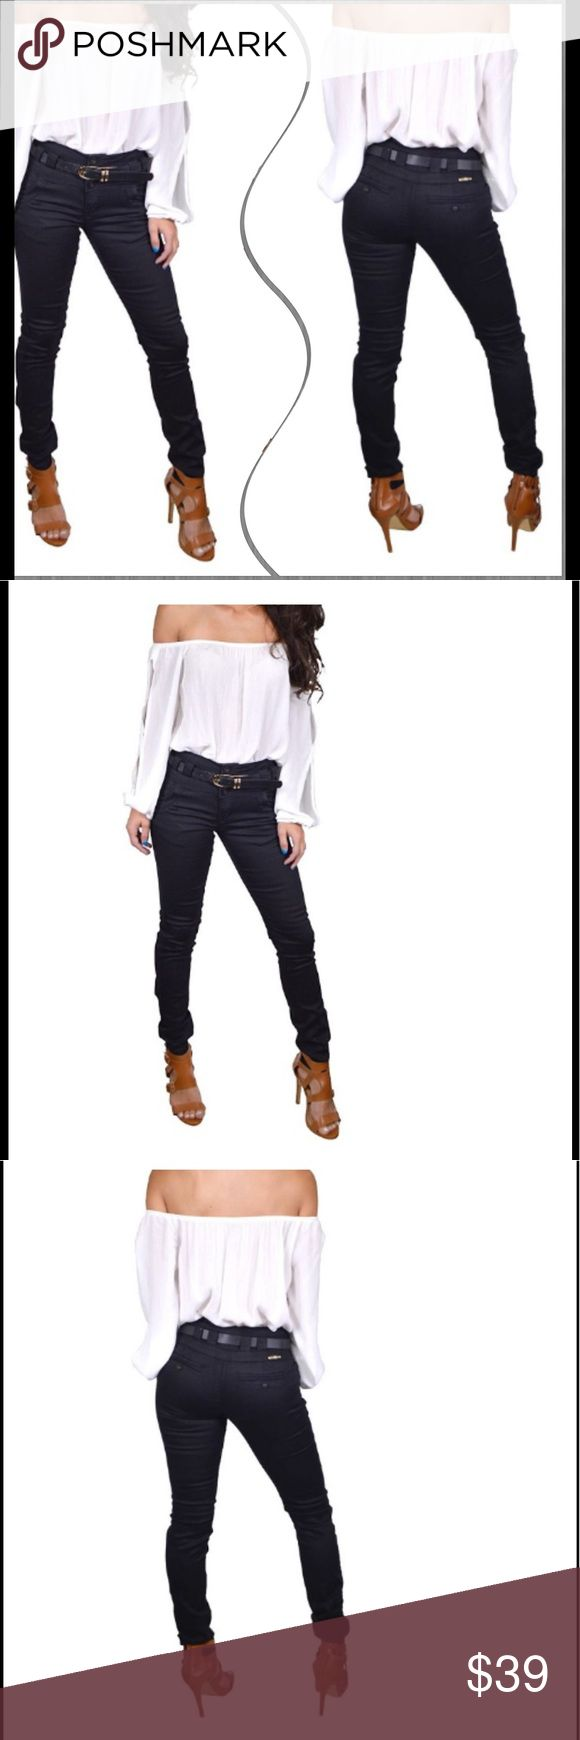 🆕Three button high waisted jeans Revamp your formal day look by wearing these Three Button High Waist Jeans. These pants have an exquisite appeal. Made of premium-grade cotton, polyester and spandex make them durable and comfortable to wear all day long. The black color of these pants looks classy and elegant. They have a pencil fit and side pockets. Complete the look by teaming these pants with the Tunic top I have in my closet and high heel pumps ✅I ship same or next day ✅Bundle for…